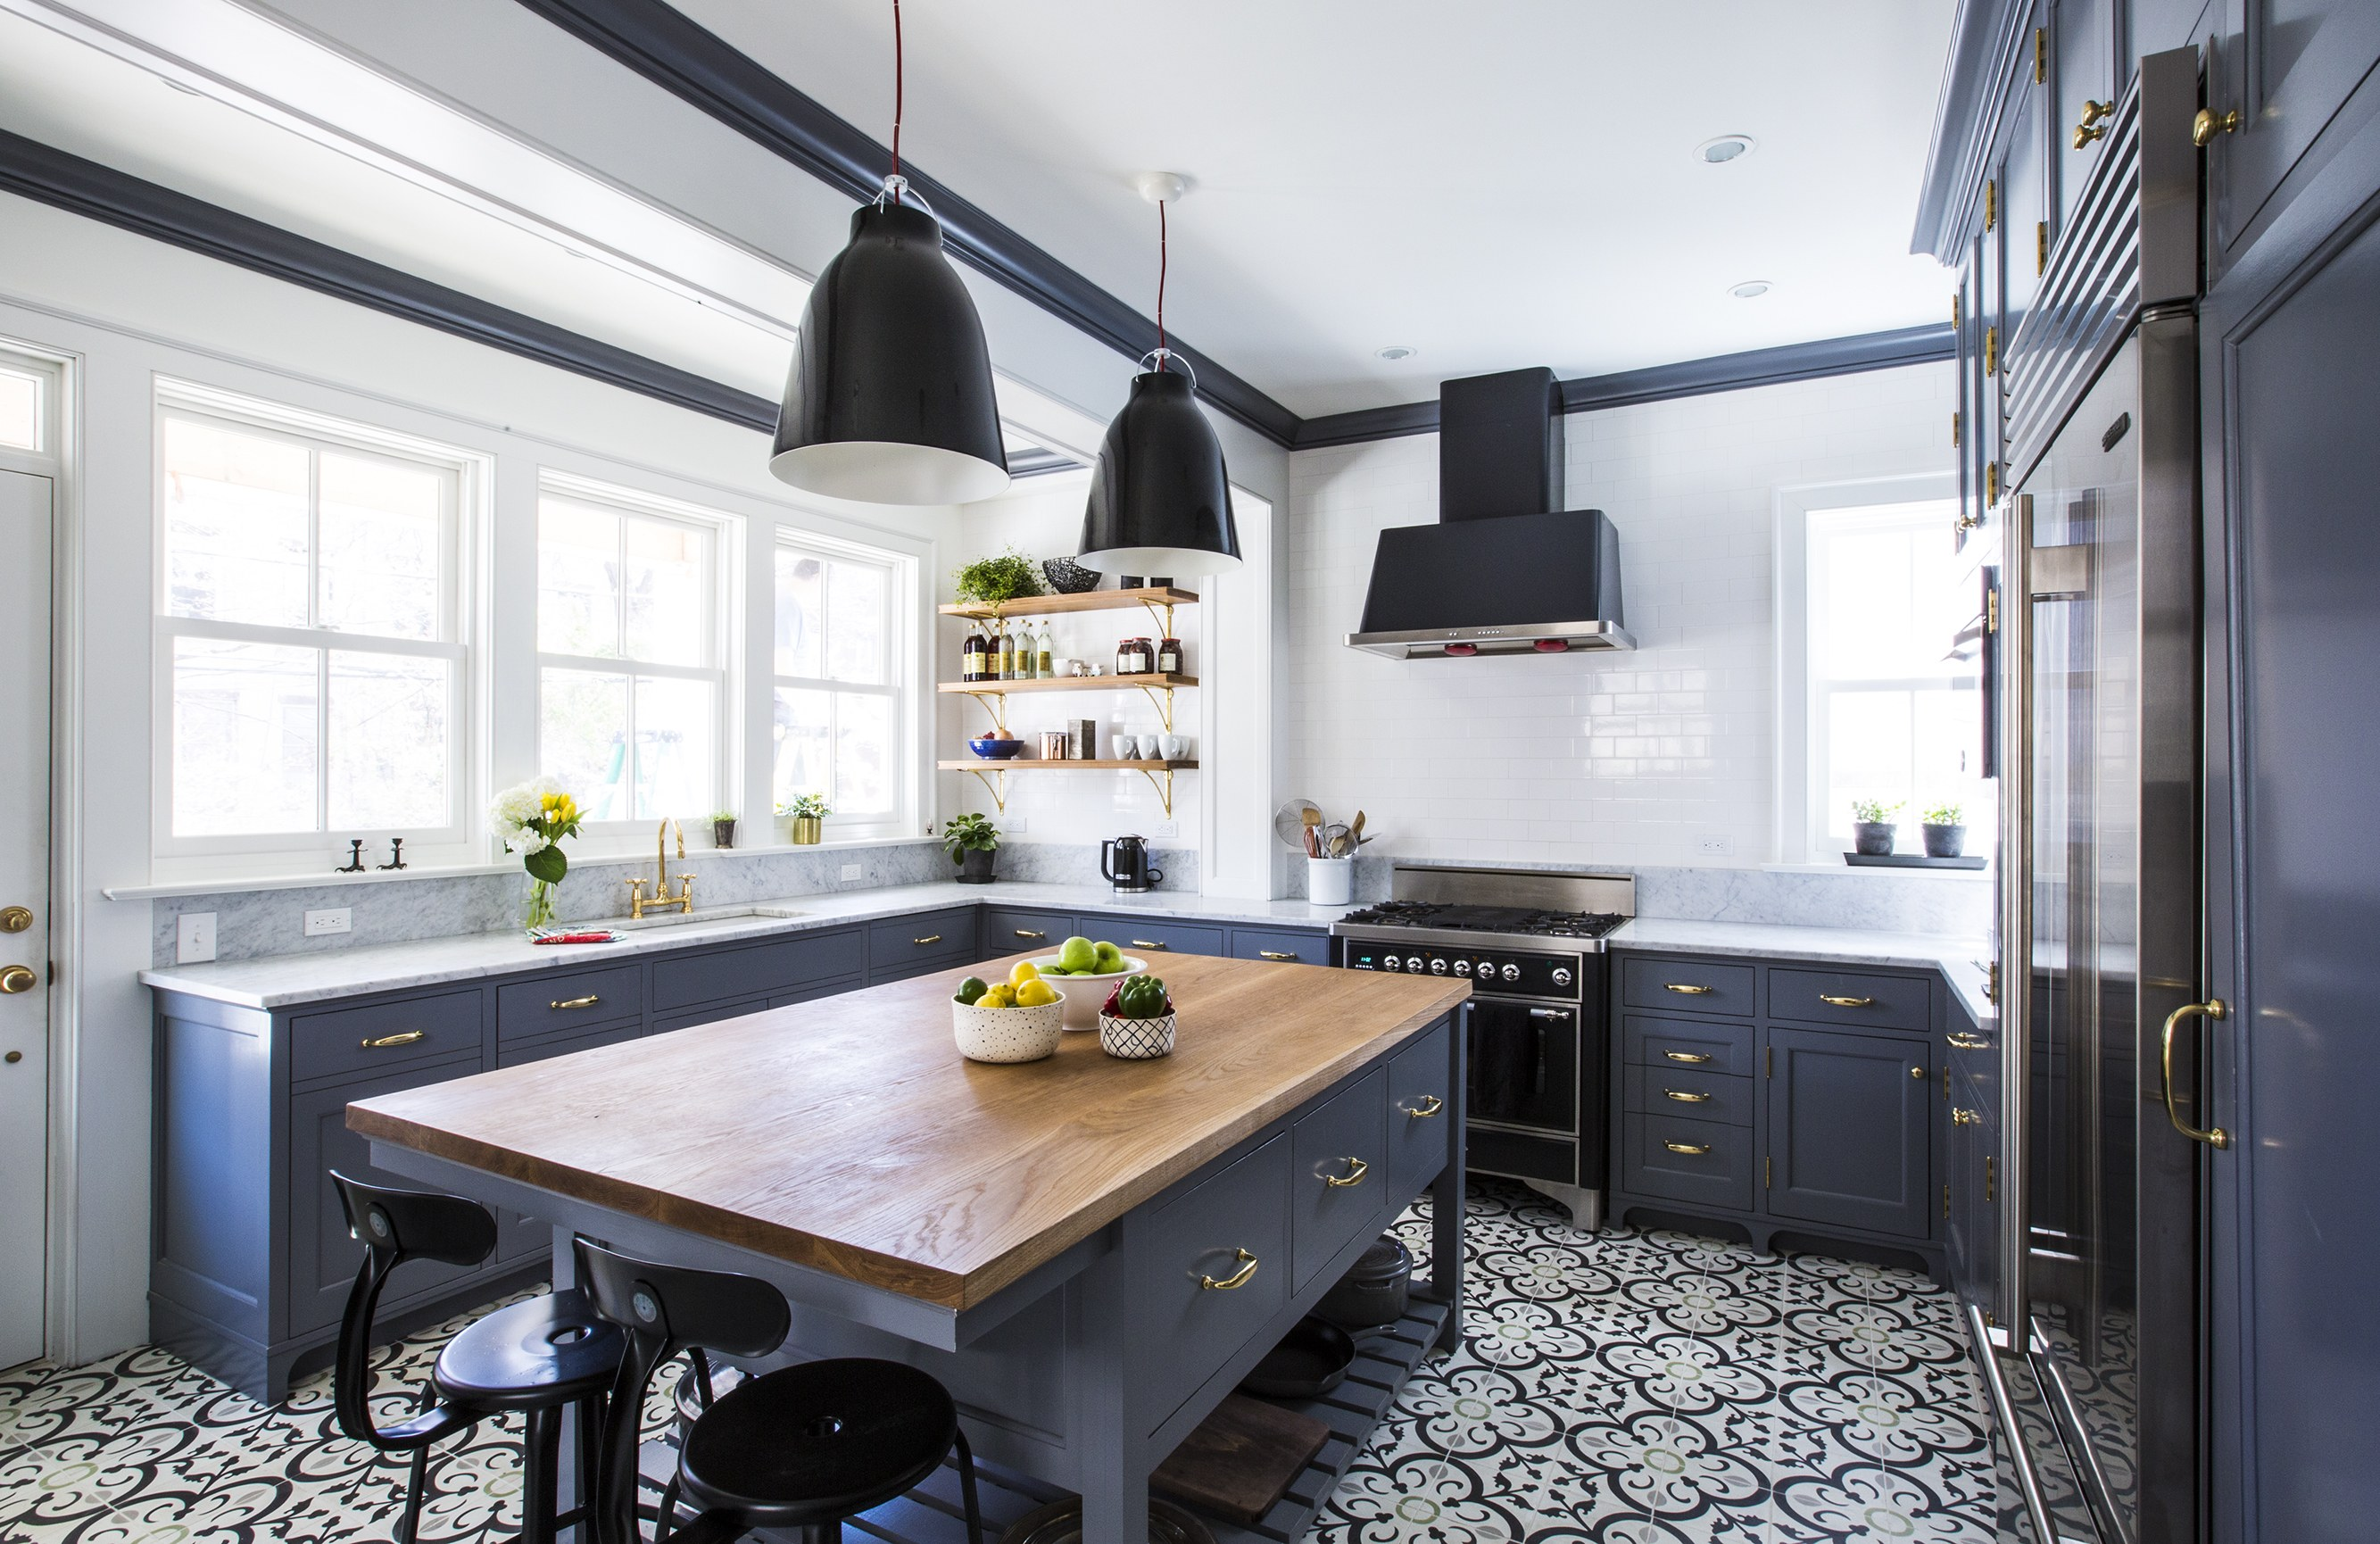 Renovation Kitchen Before And After A White And Gray Kitchen Renovation Huffpost